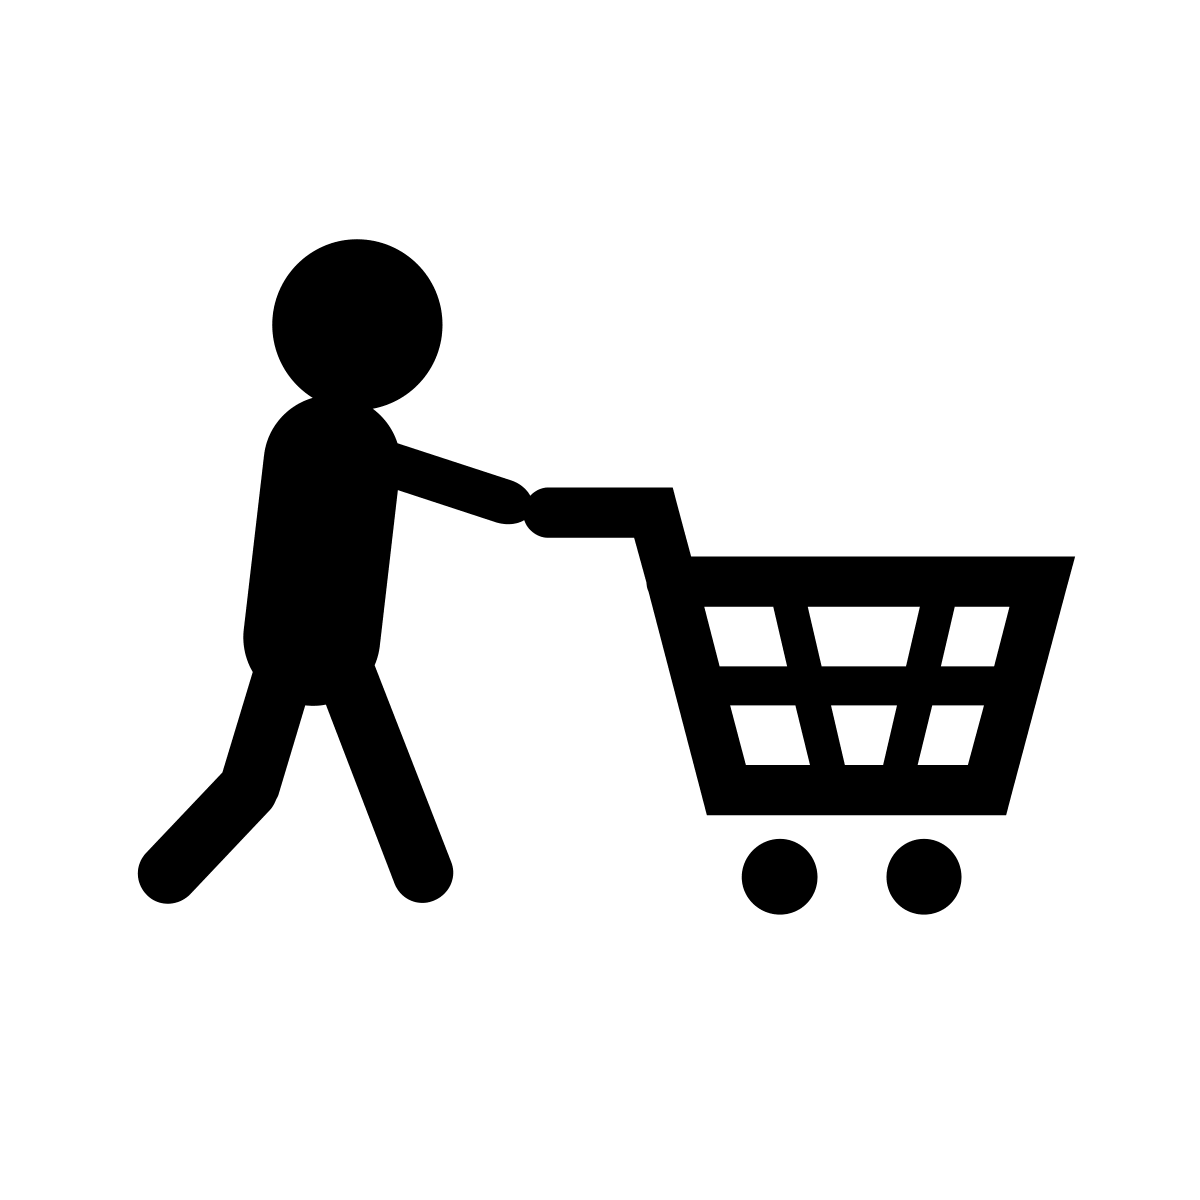 black and white shopping cart